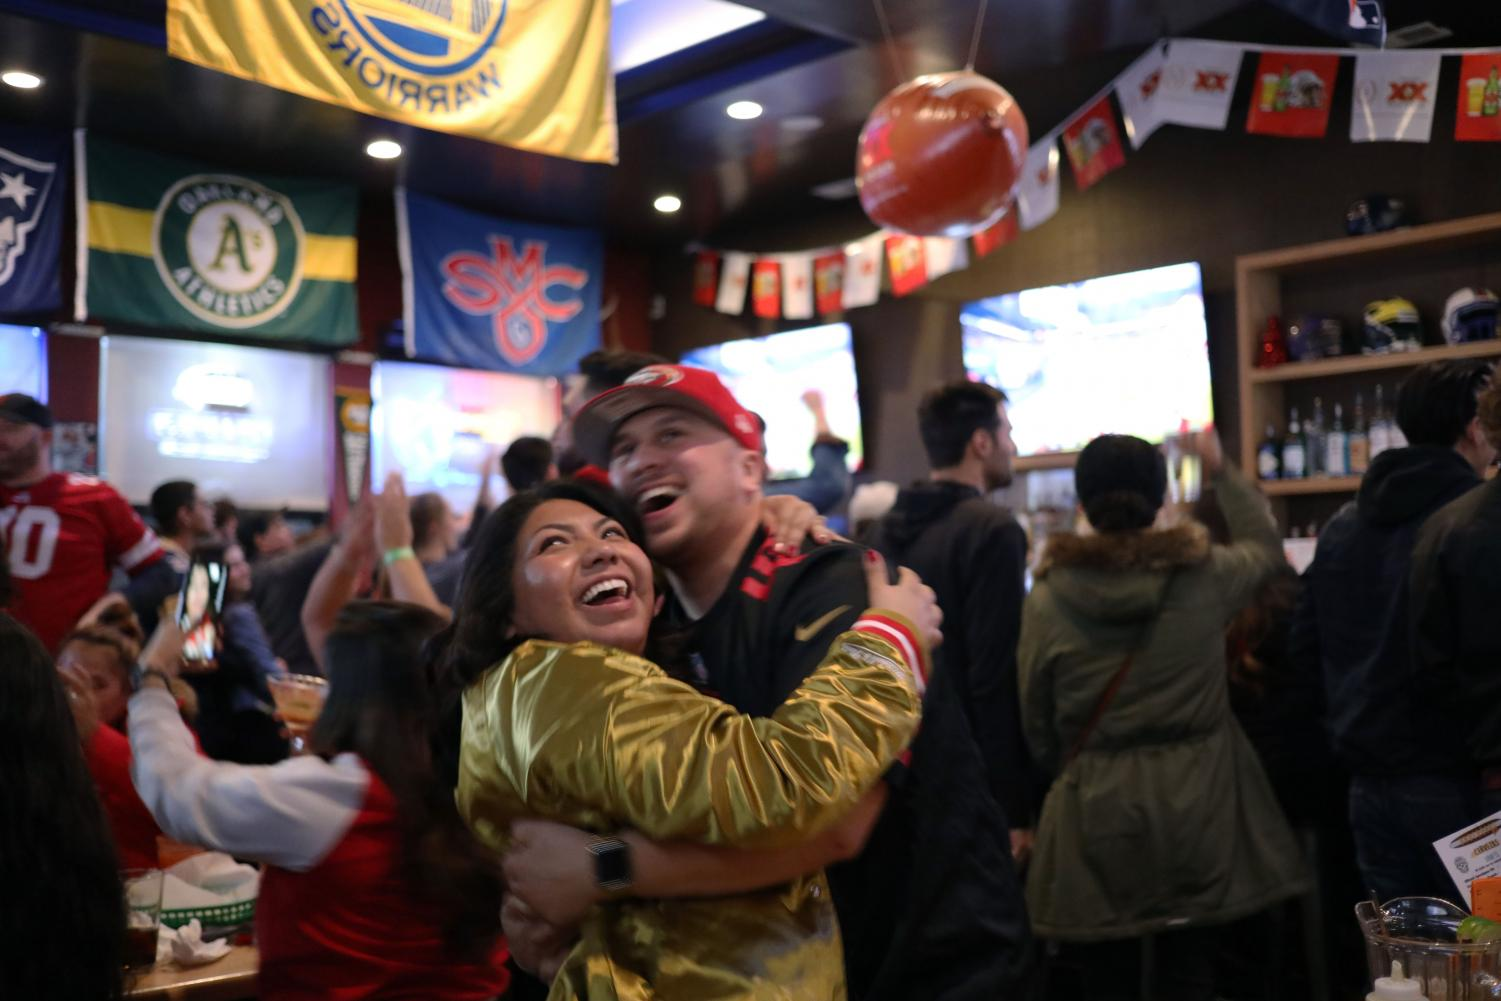 Karen Bueno Manny Ramirez embrace in a hug after the San Francisco 49rs score a touchdown in the second half of Super Bowl LIV at Underdogs Too in San Francisco Calif., on Sunday February 2, 2020. (Emily Curiel)